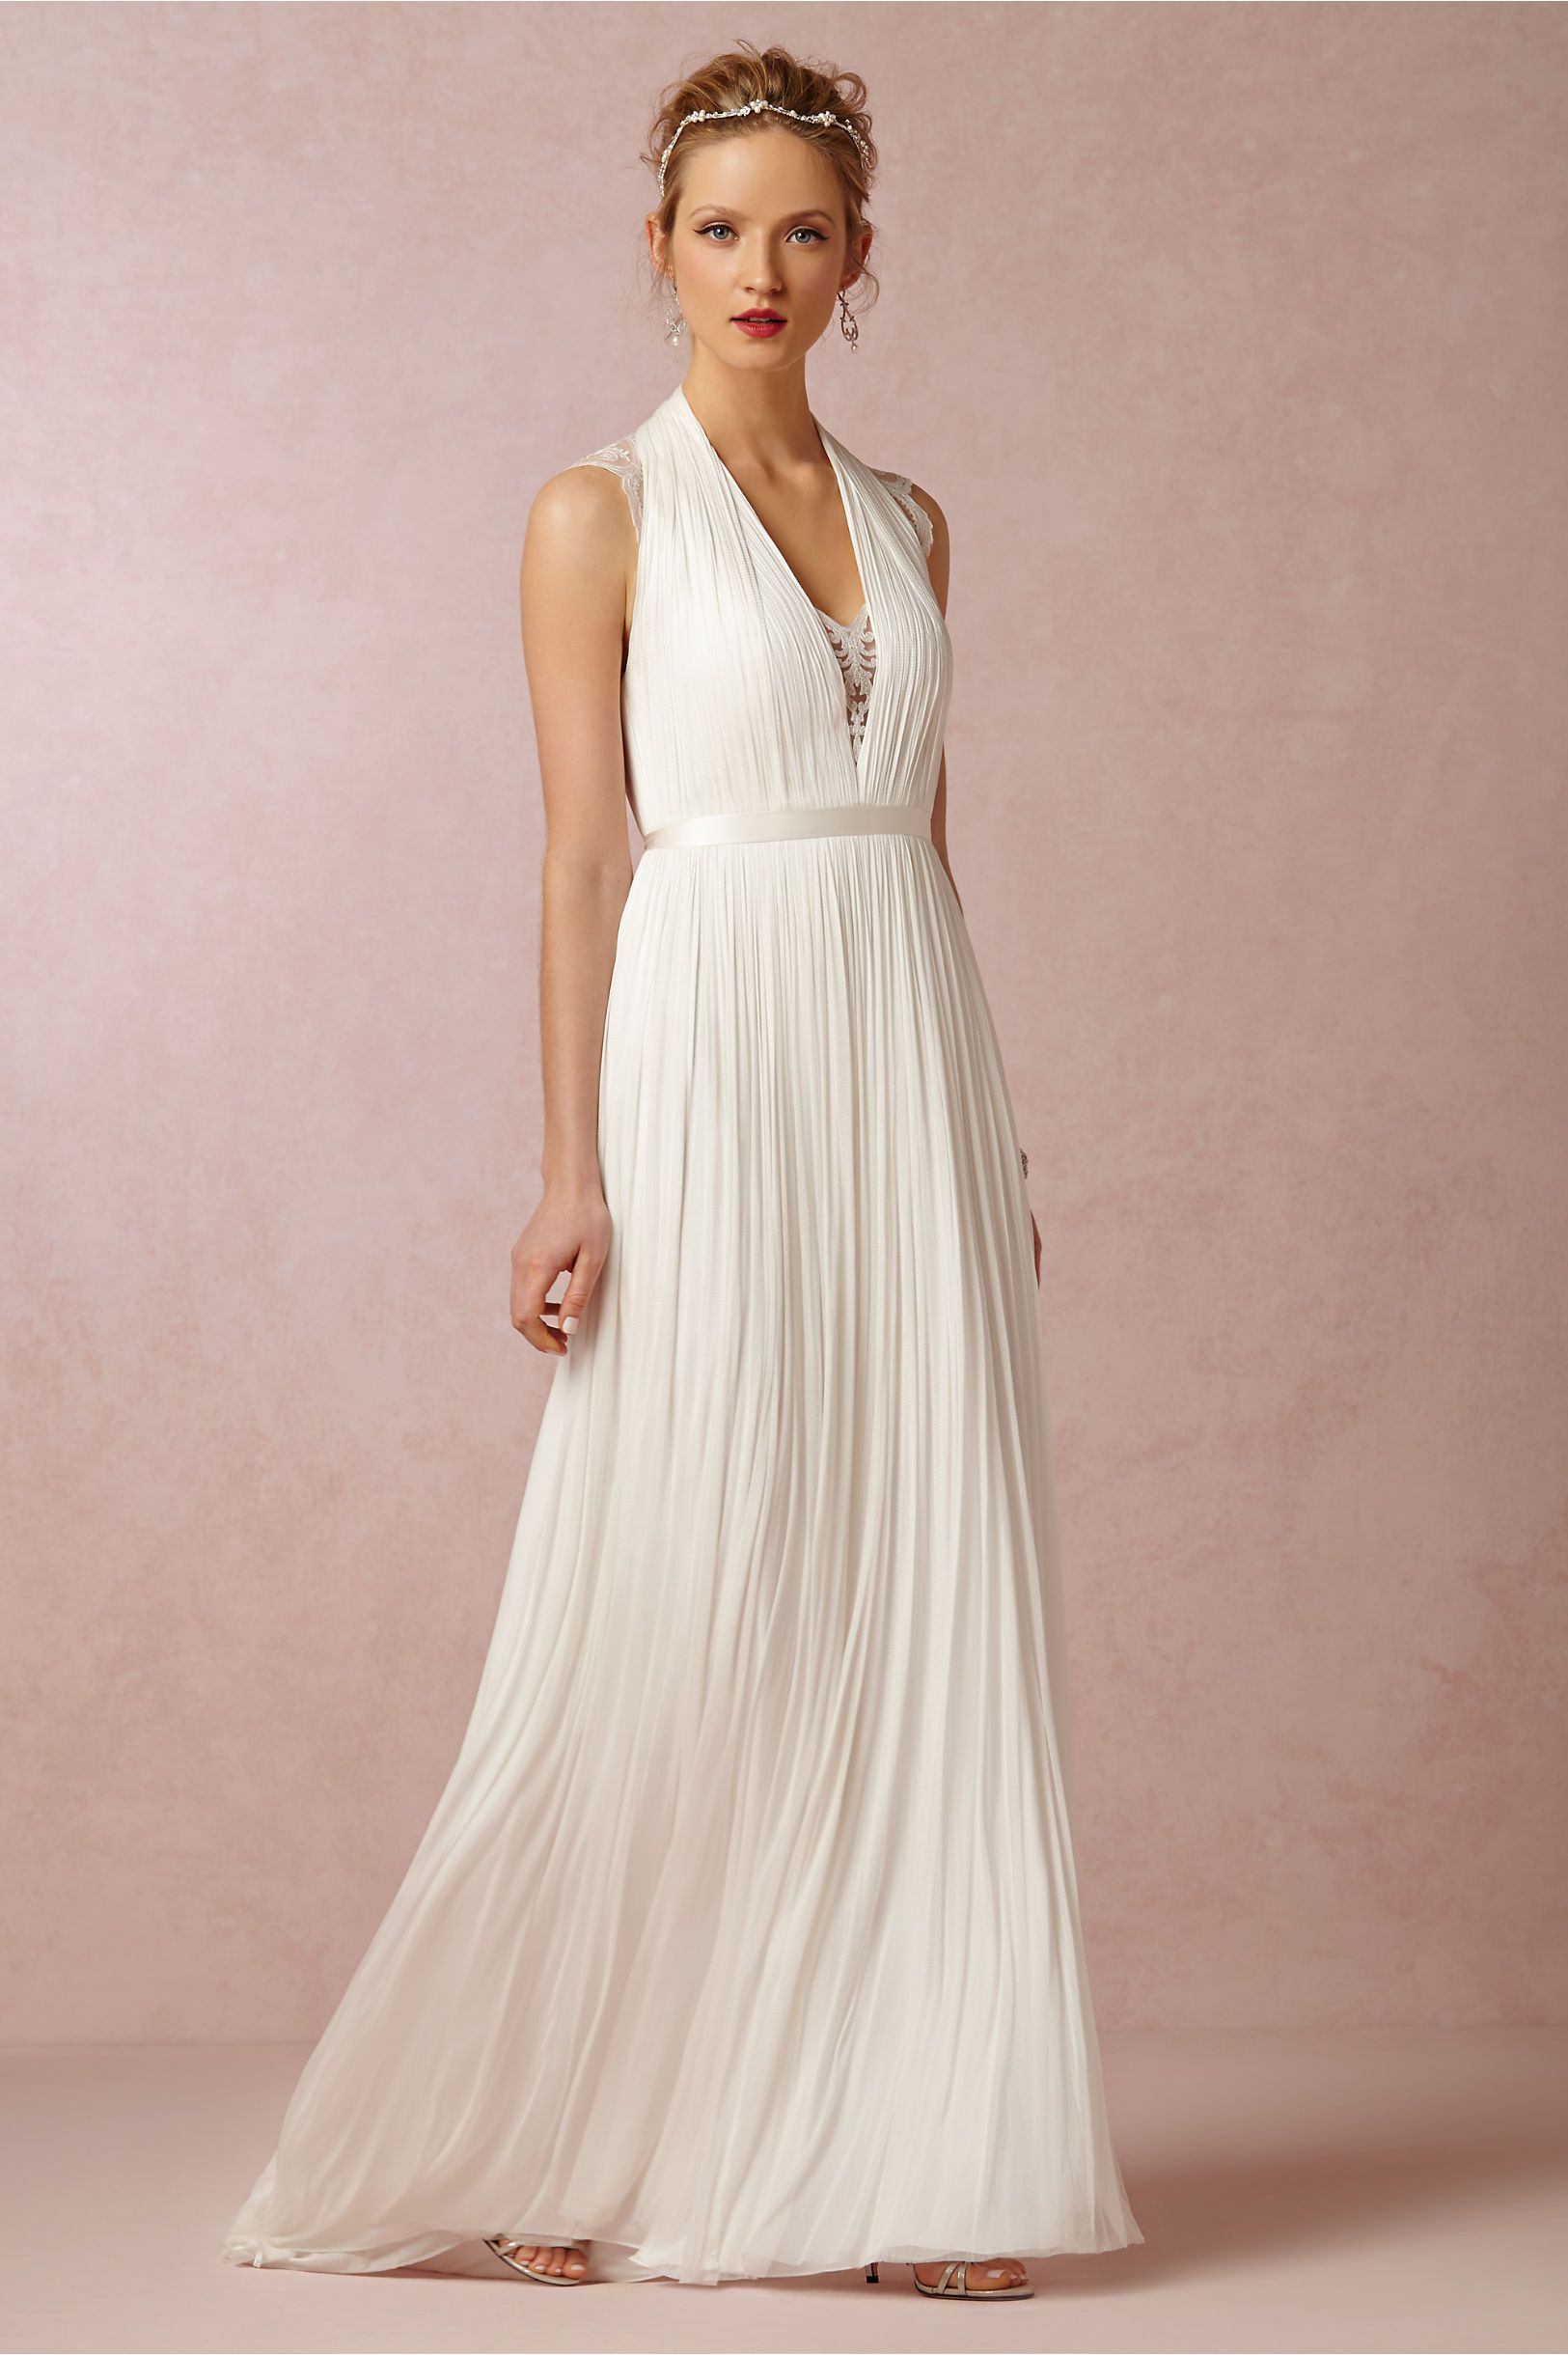 Wing Gown from @BHLDN | My Beach Wedding! | Pinterest | Casamiento ...